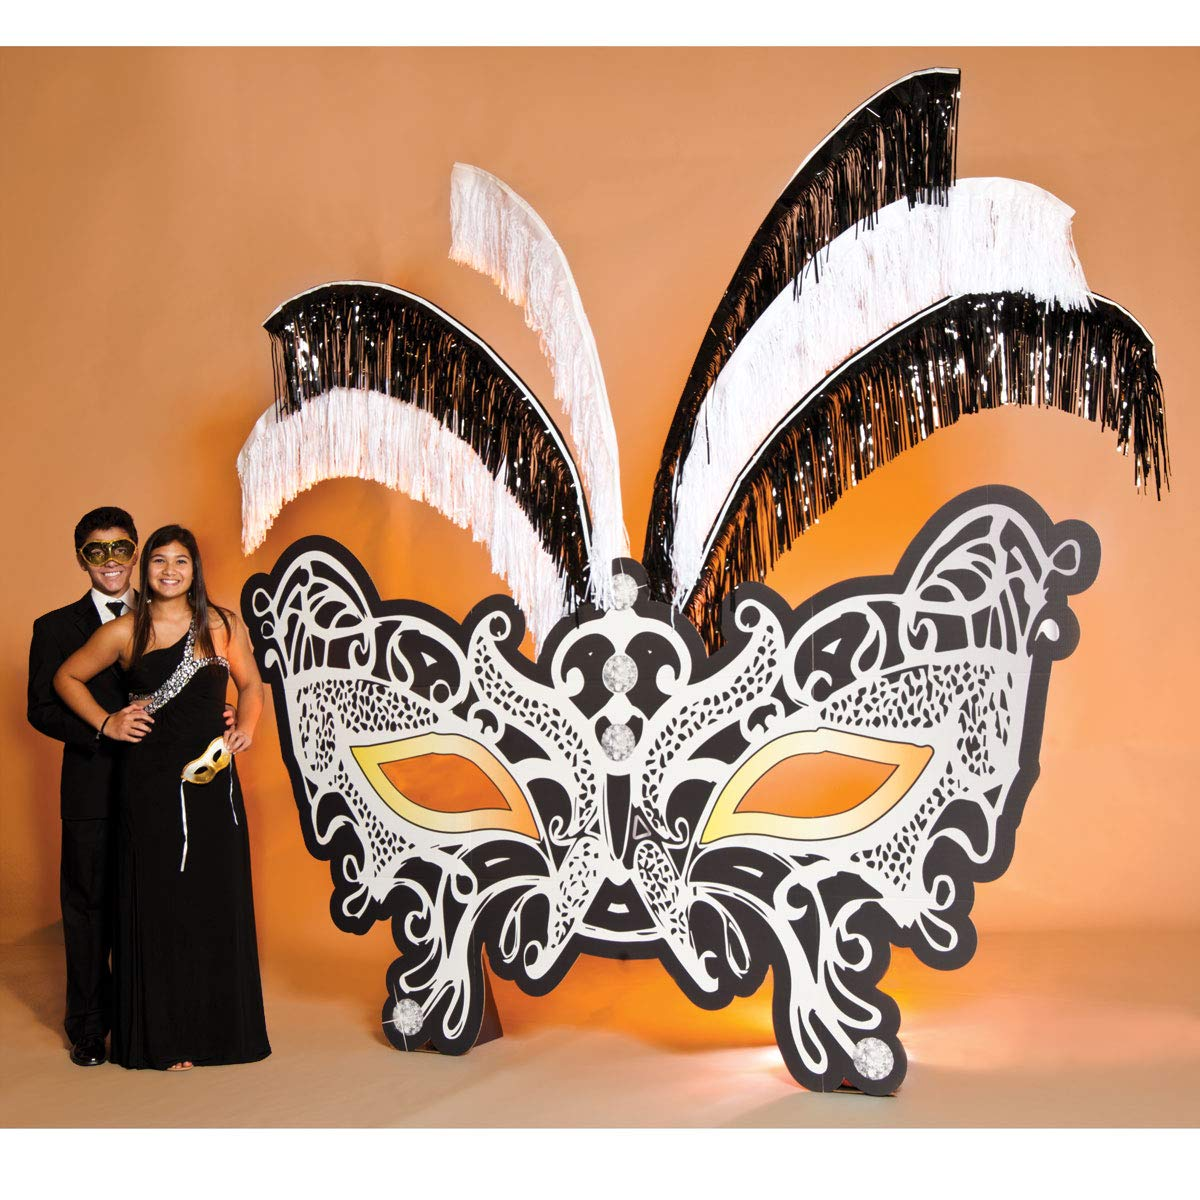 Masquerade Mask Prop Kit, Cardboard Mask Prom Decoration